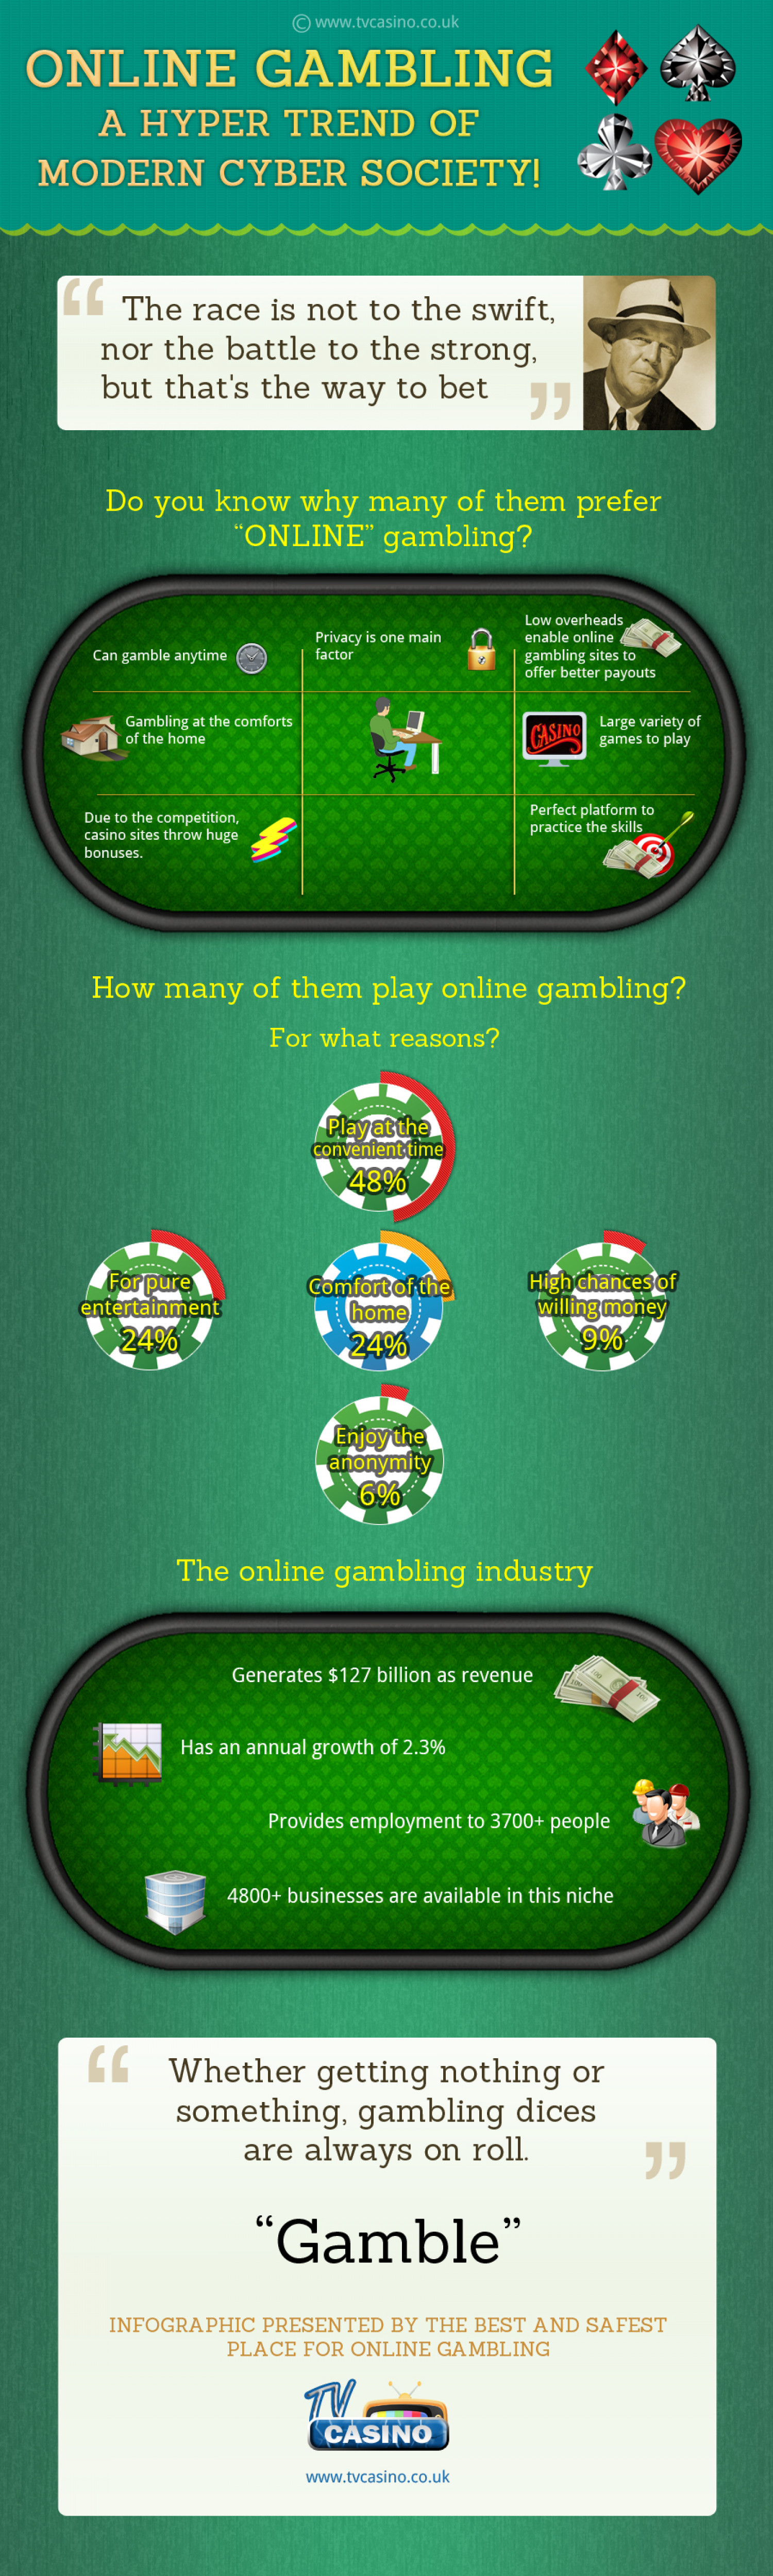 Online Gambling, A Hyper Trend Of Modern Cyber Society [Infographic] Infographic